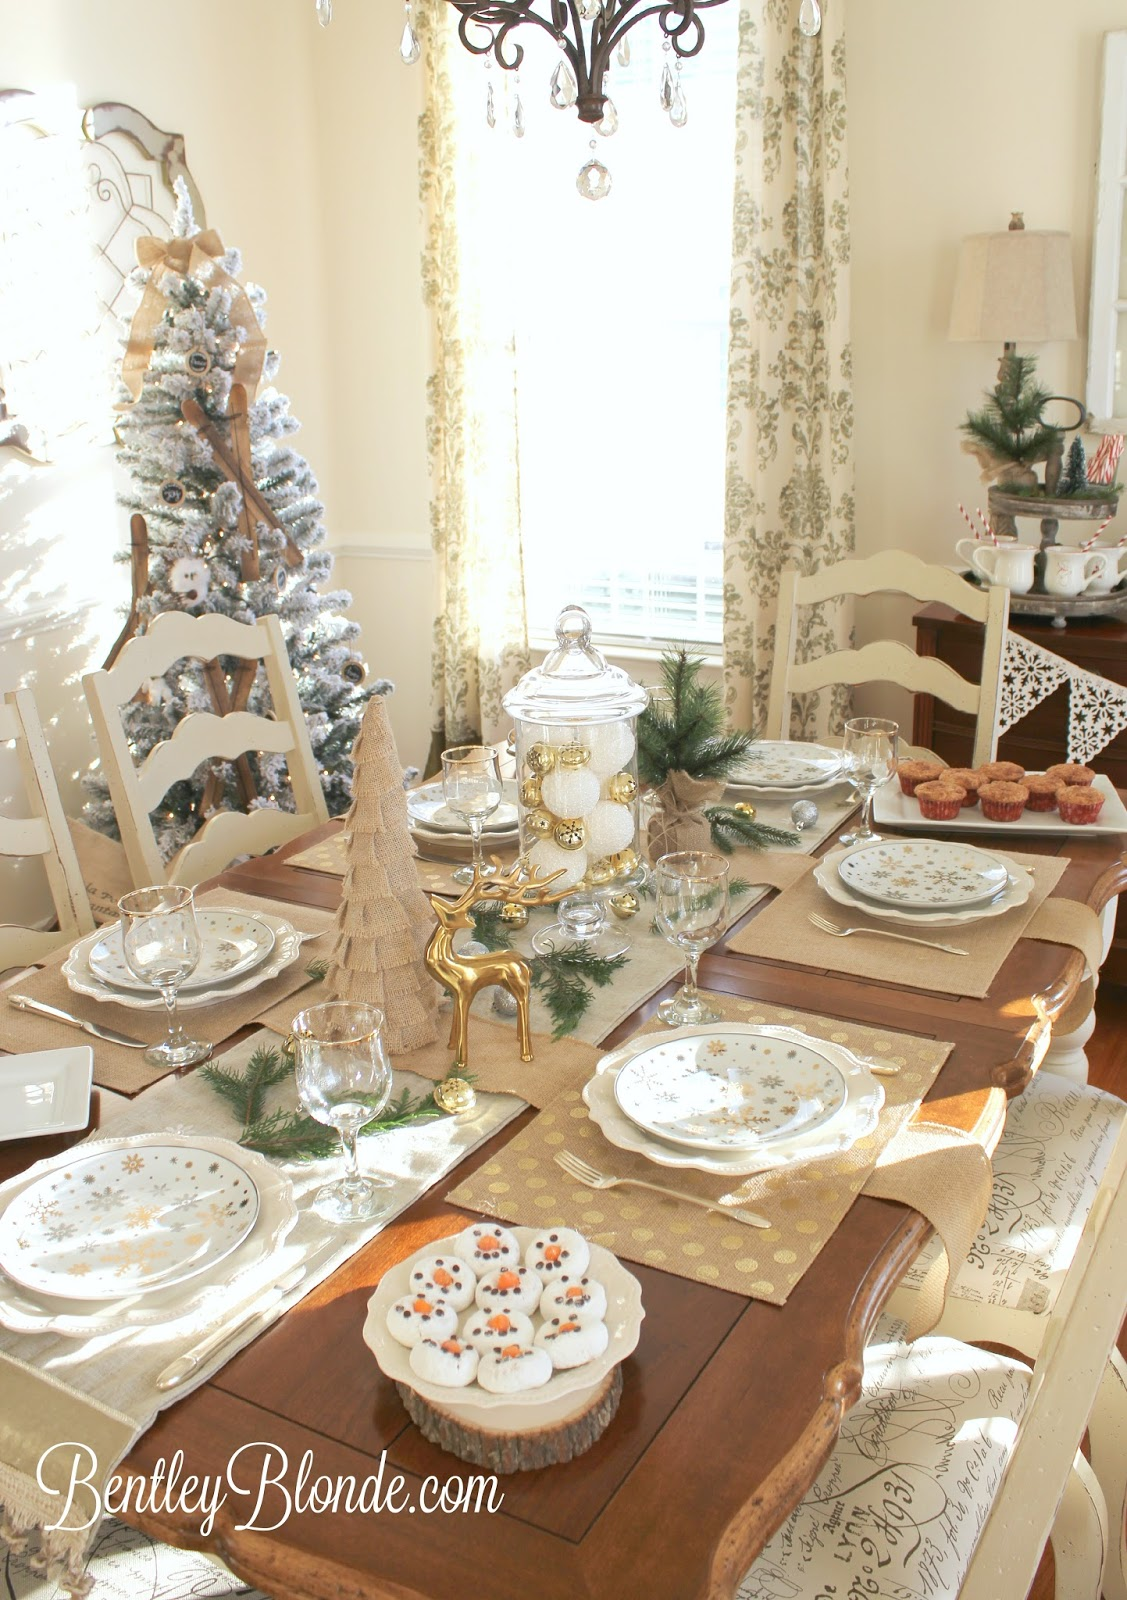 BentleyBlonde: Holiday Brunch Ideas | Christmas Table, Hot ...